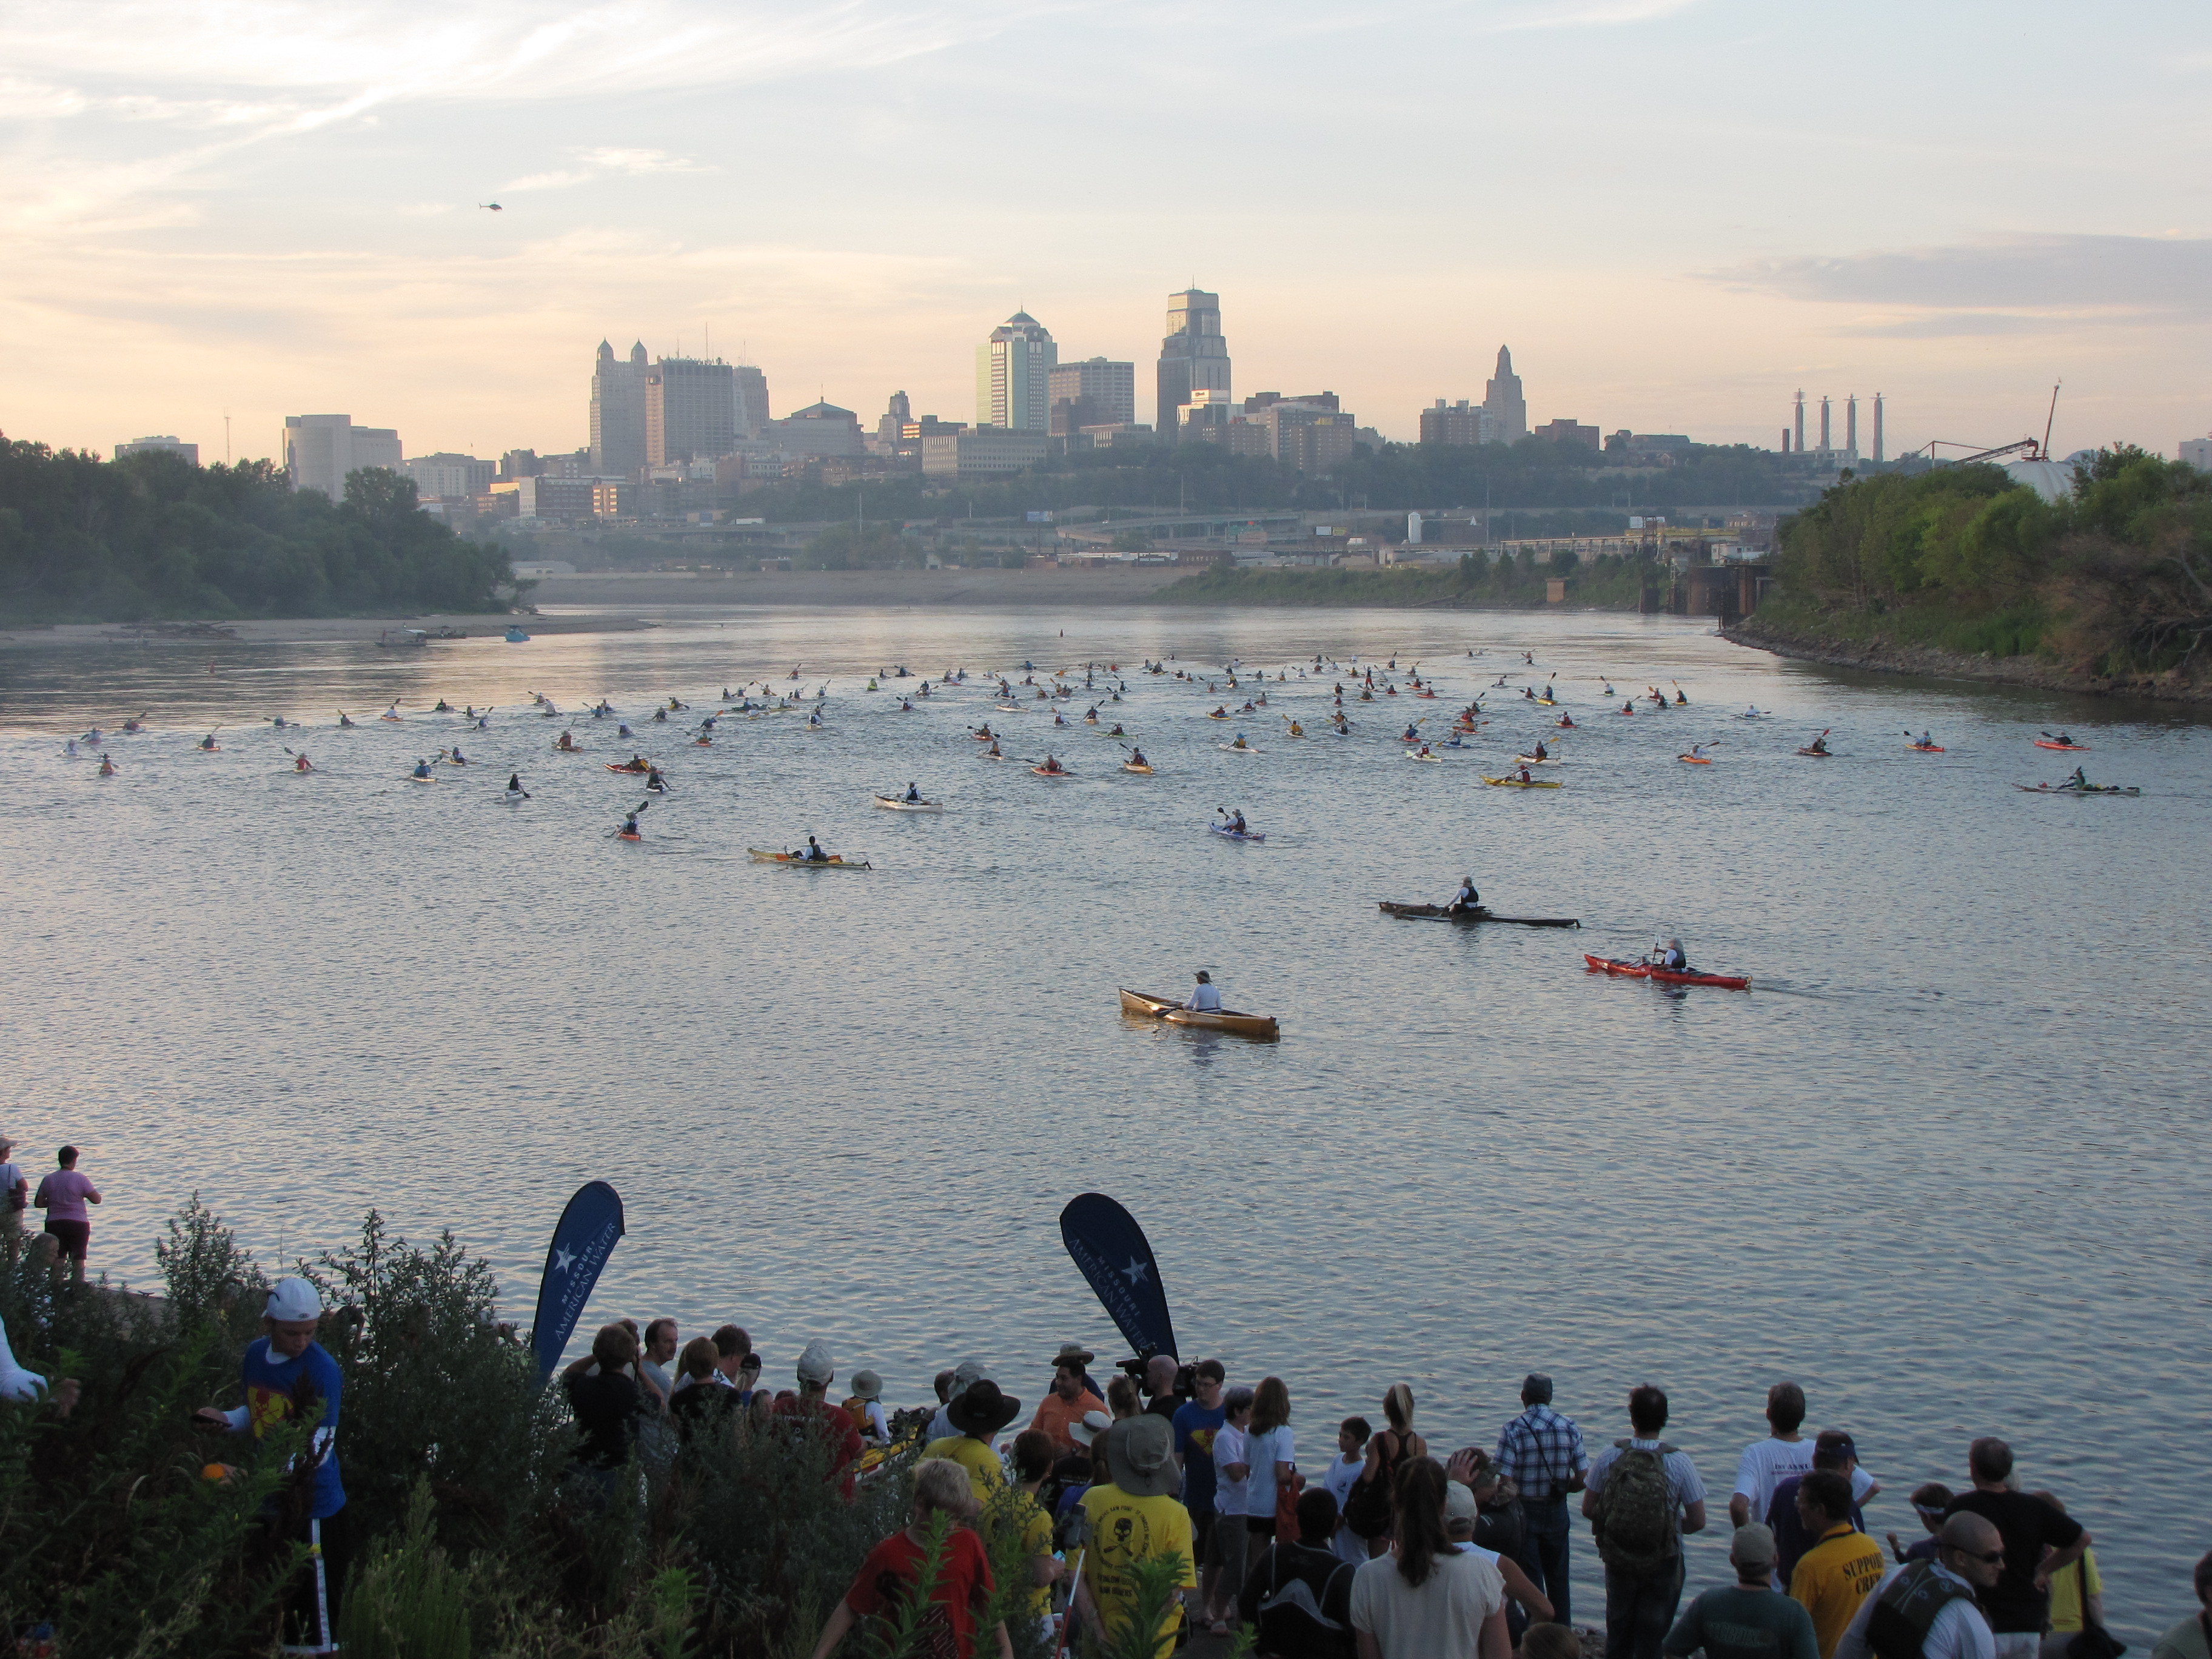 More than 400 boats leave Kansas City in the 2013 Missouri American Water MR340 river race. (Photo: Business Wire)